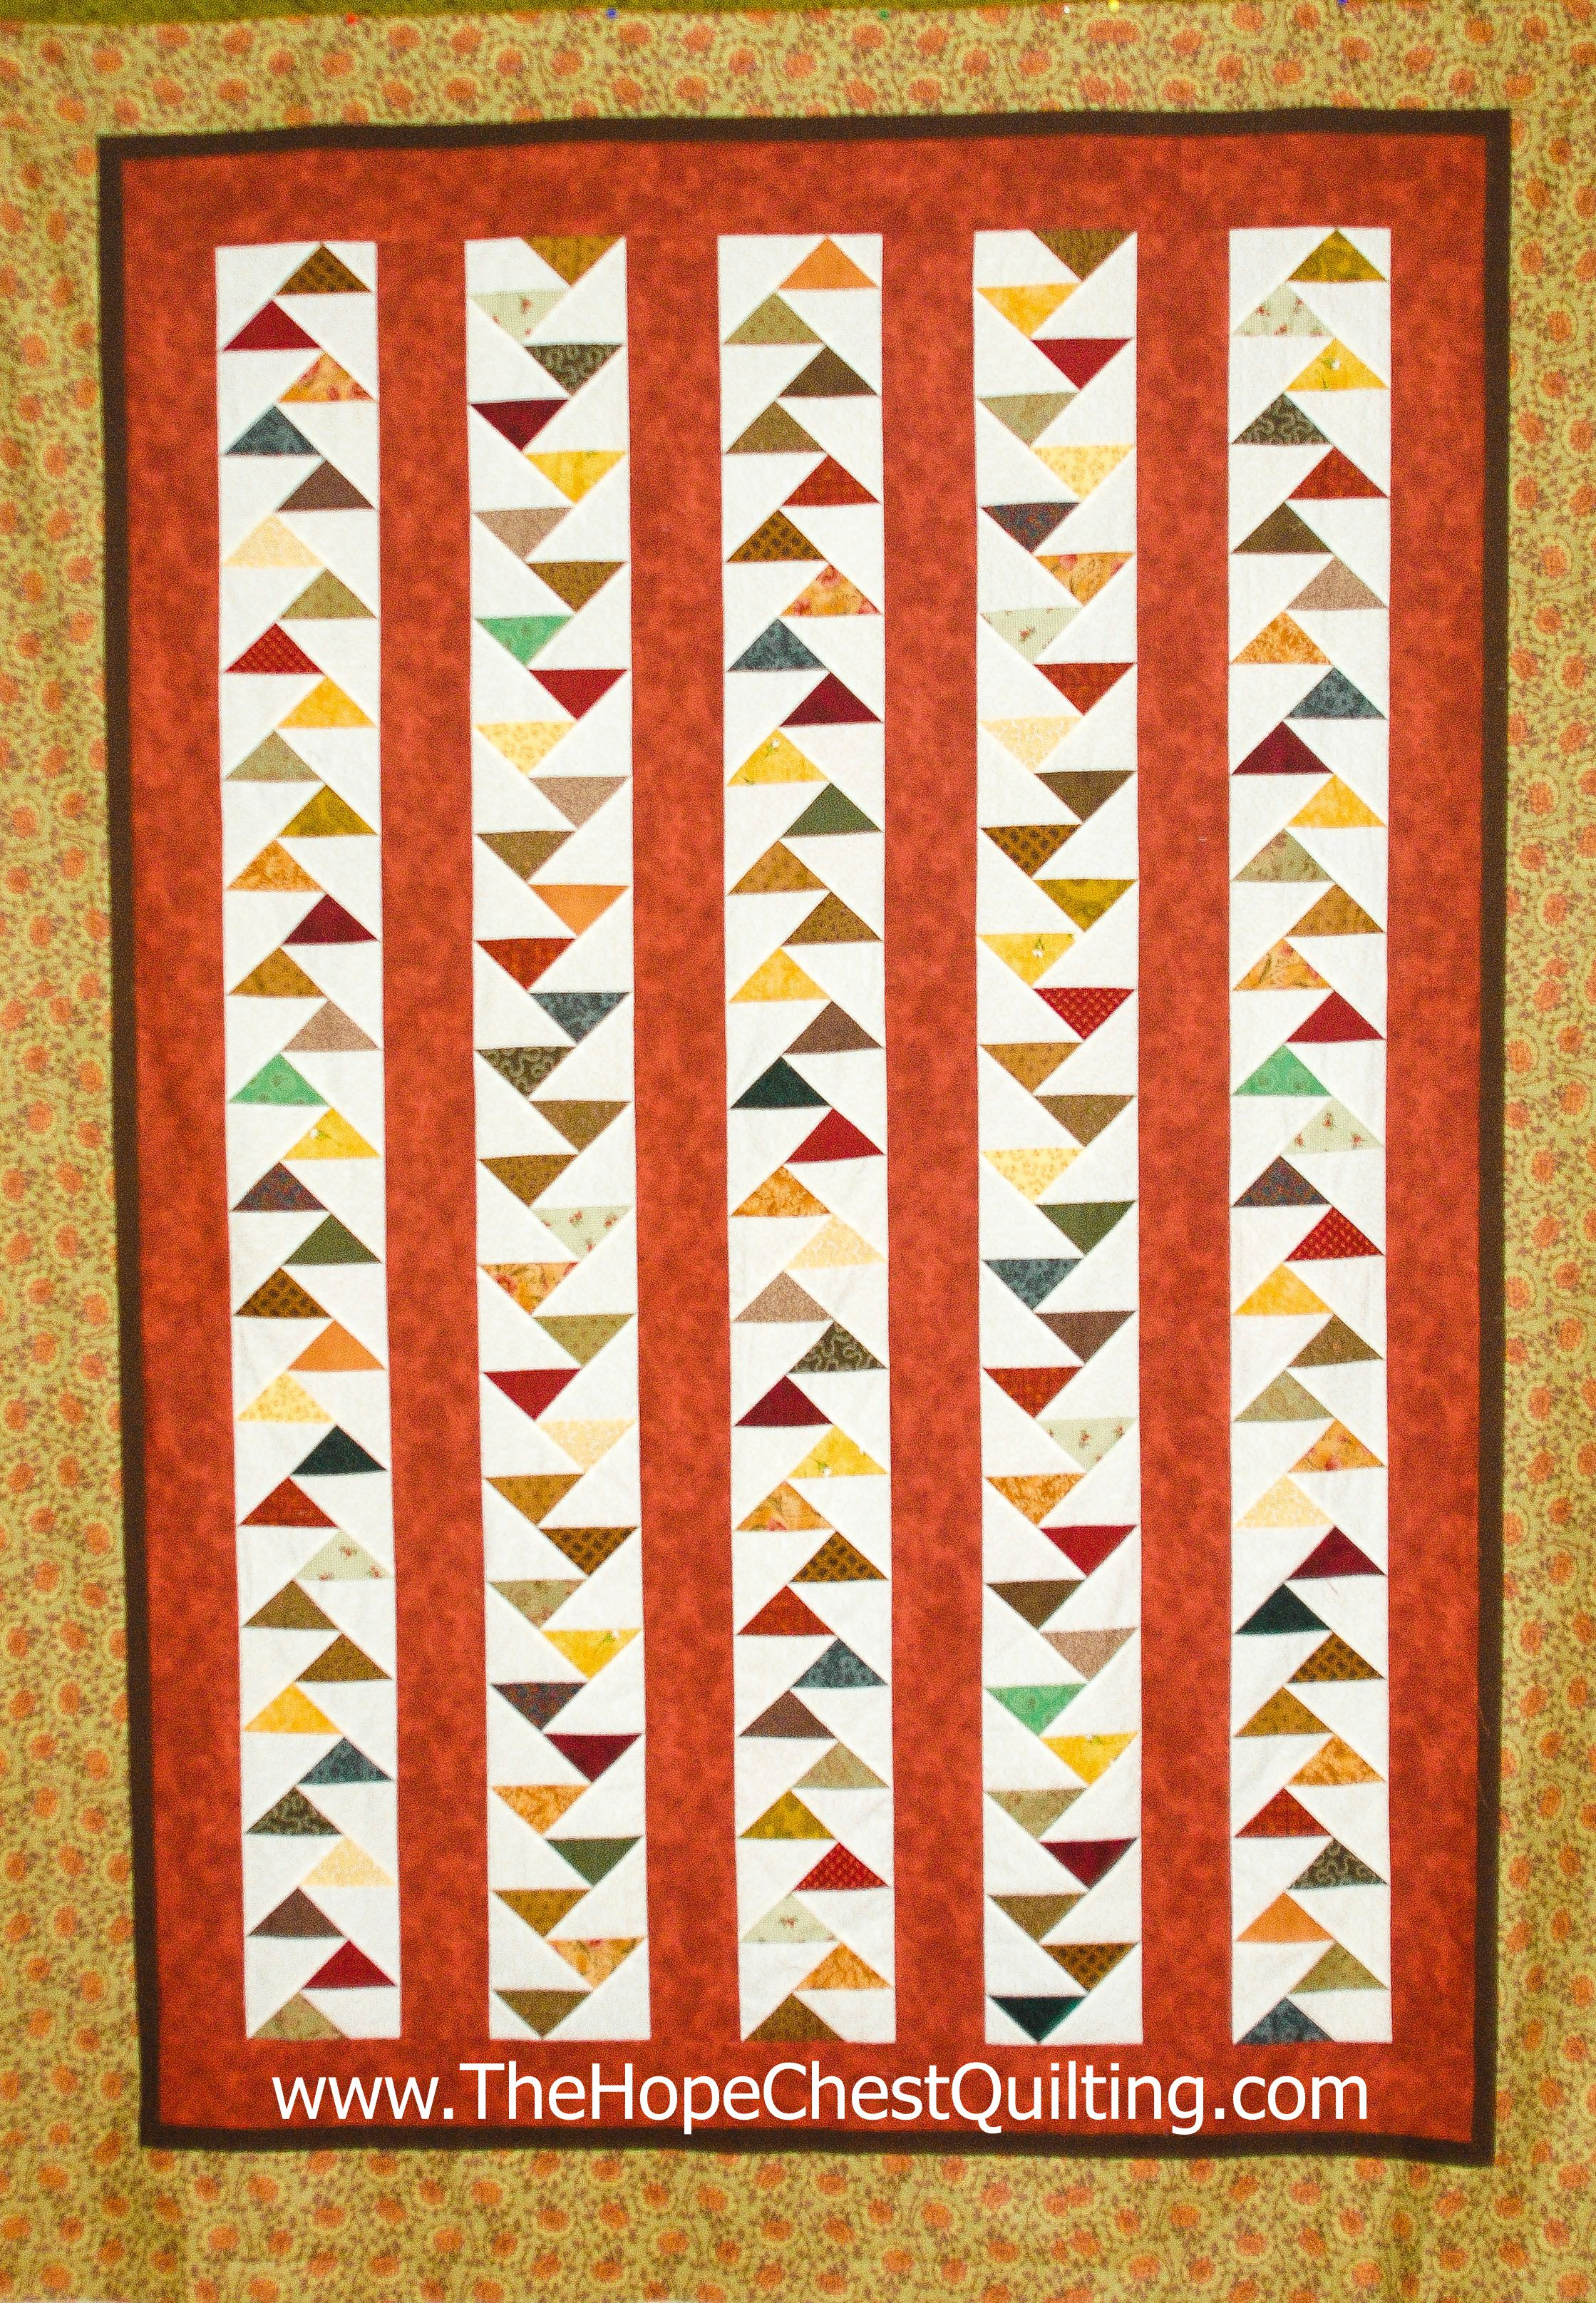 Workshops, Lectures and Classes - The Hope Chest Quilting : migrating geese quilt pattern - Adamdwight.com